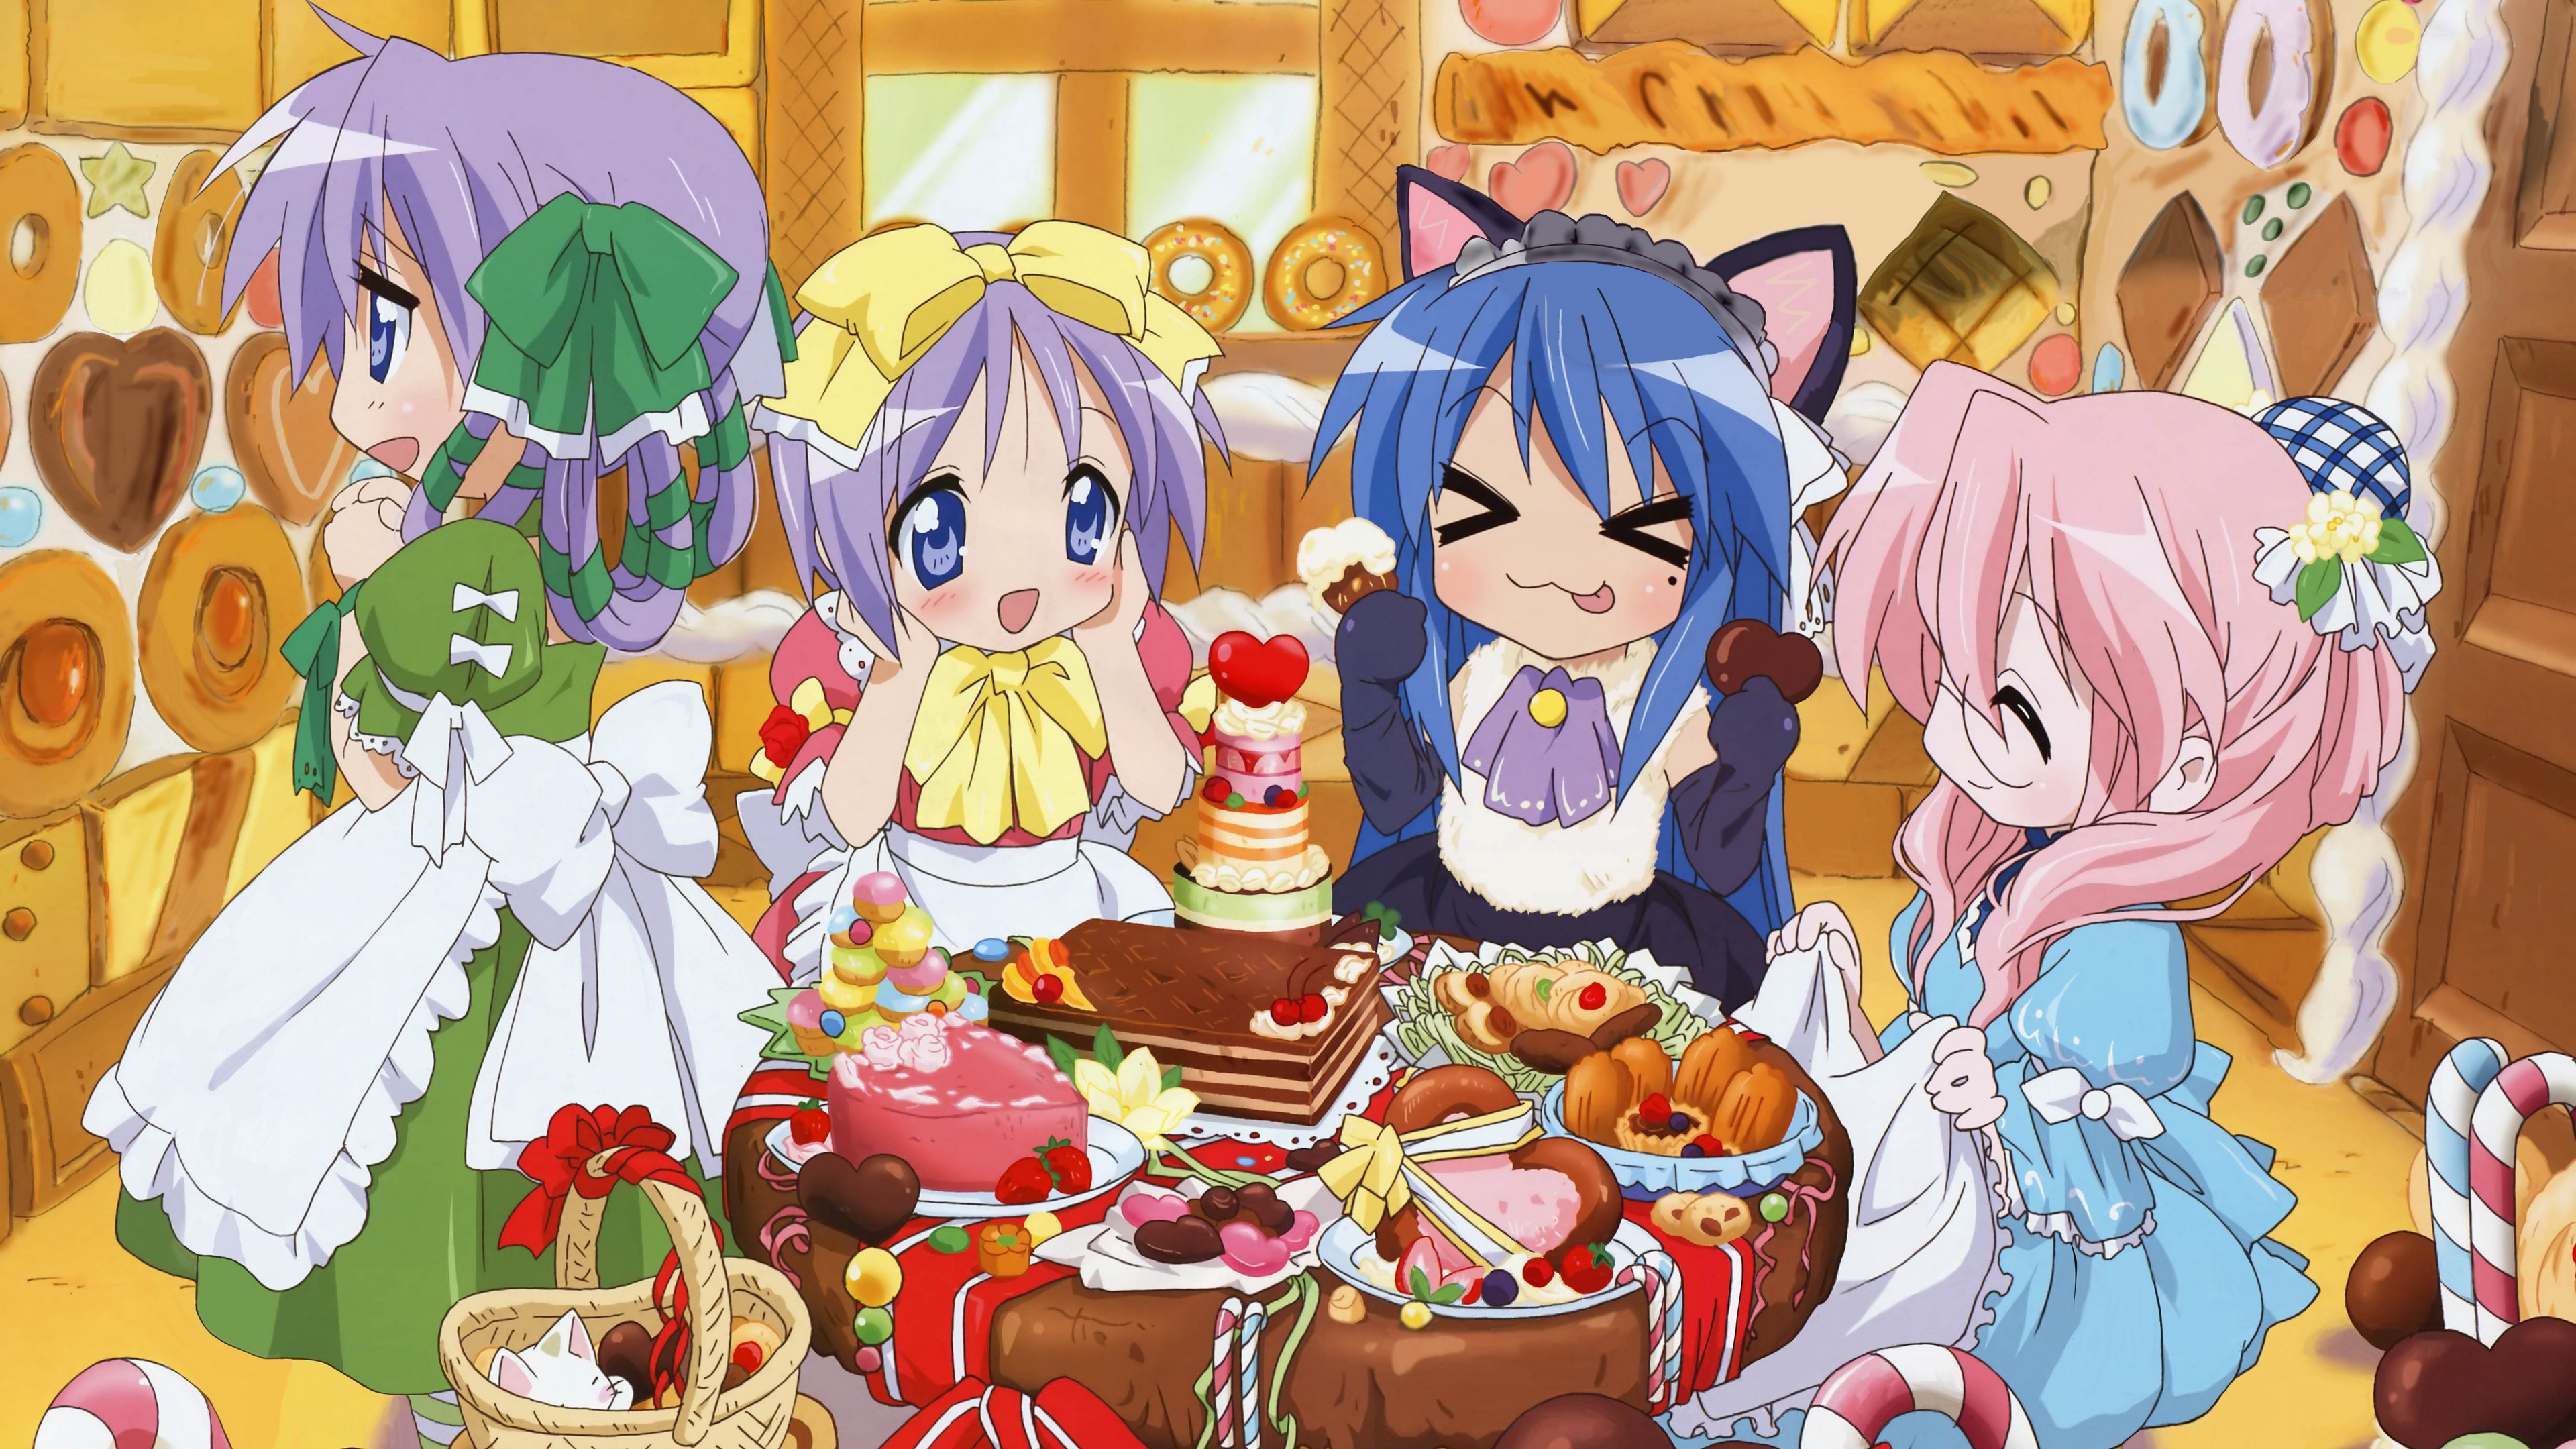 lucky star girls candy 4k 1541975664 - lucky star, girls, candy 4k - lucky star, Girls, Candy